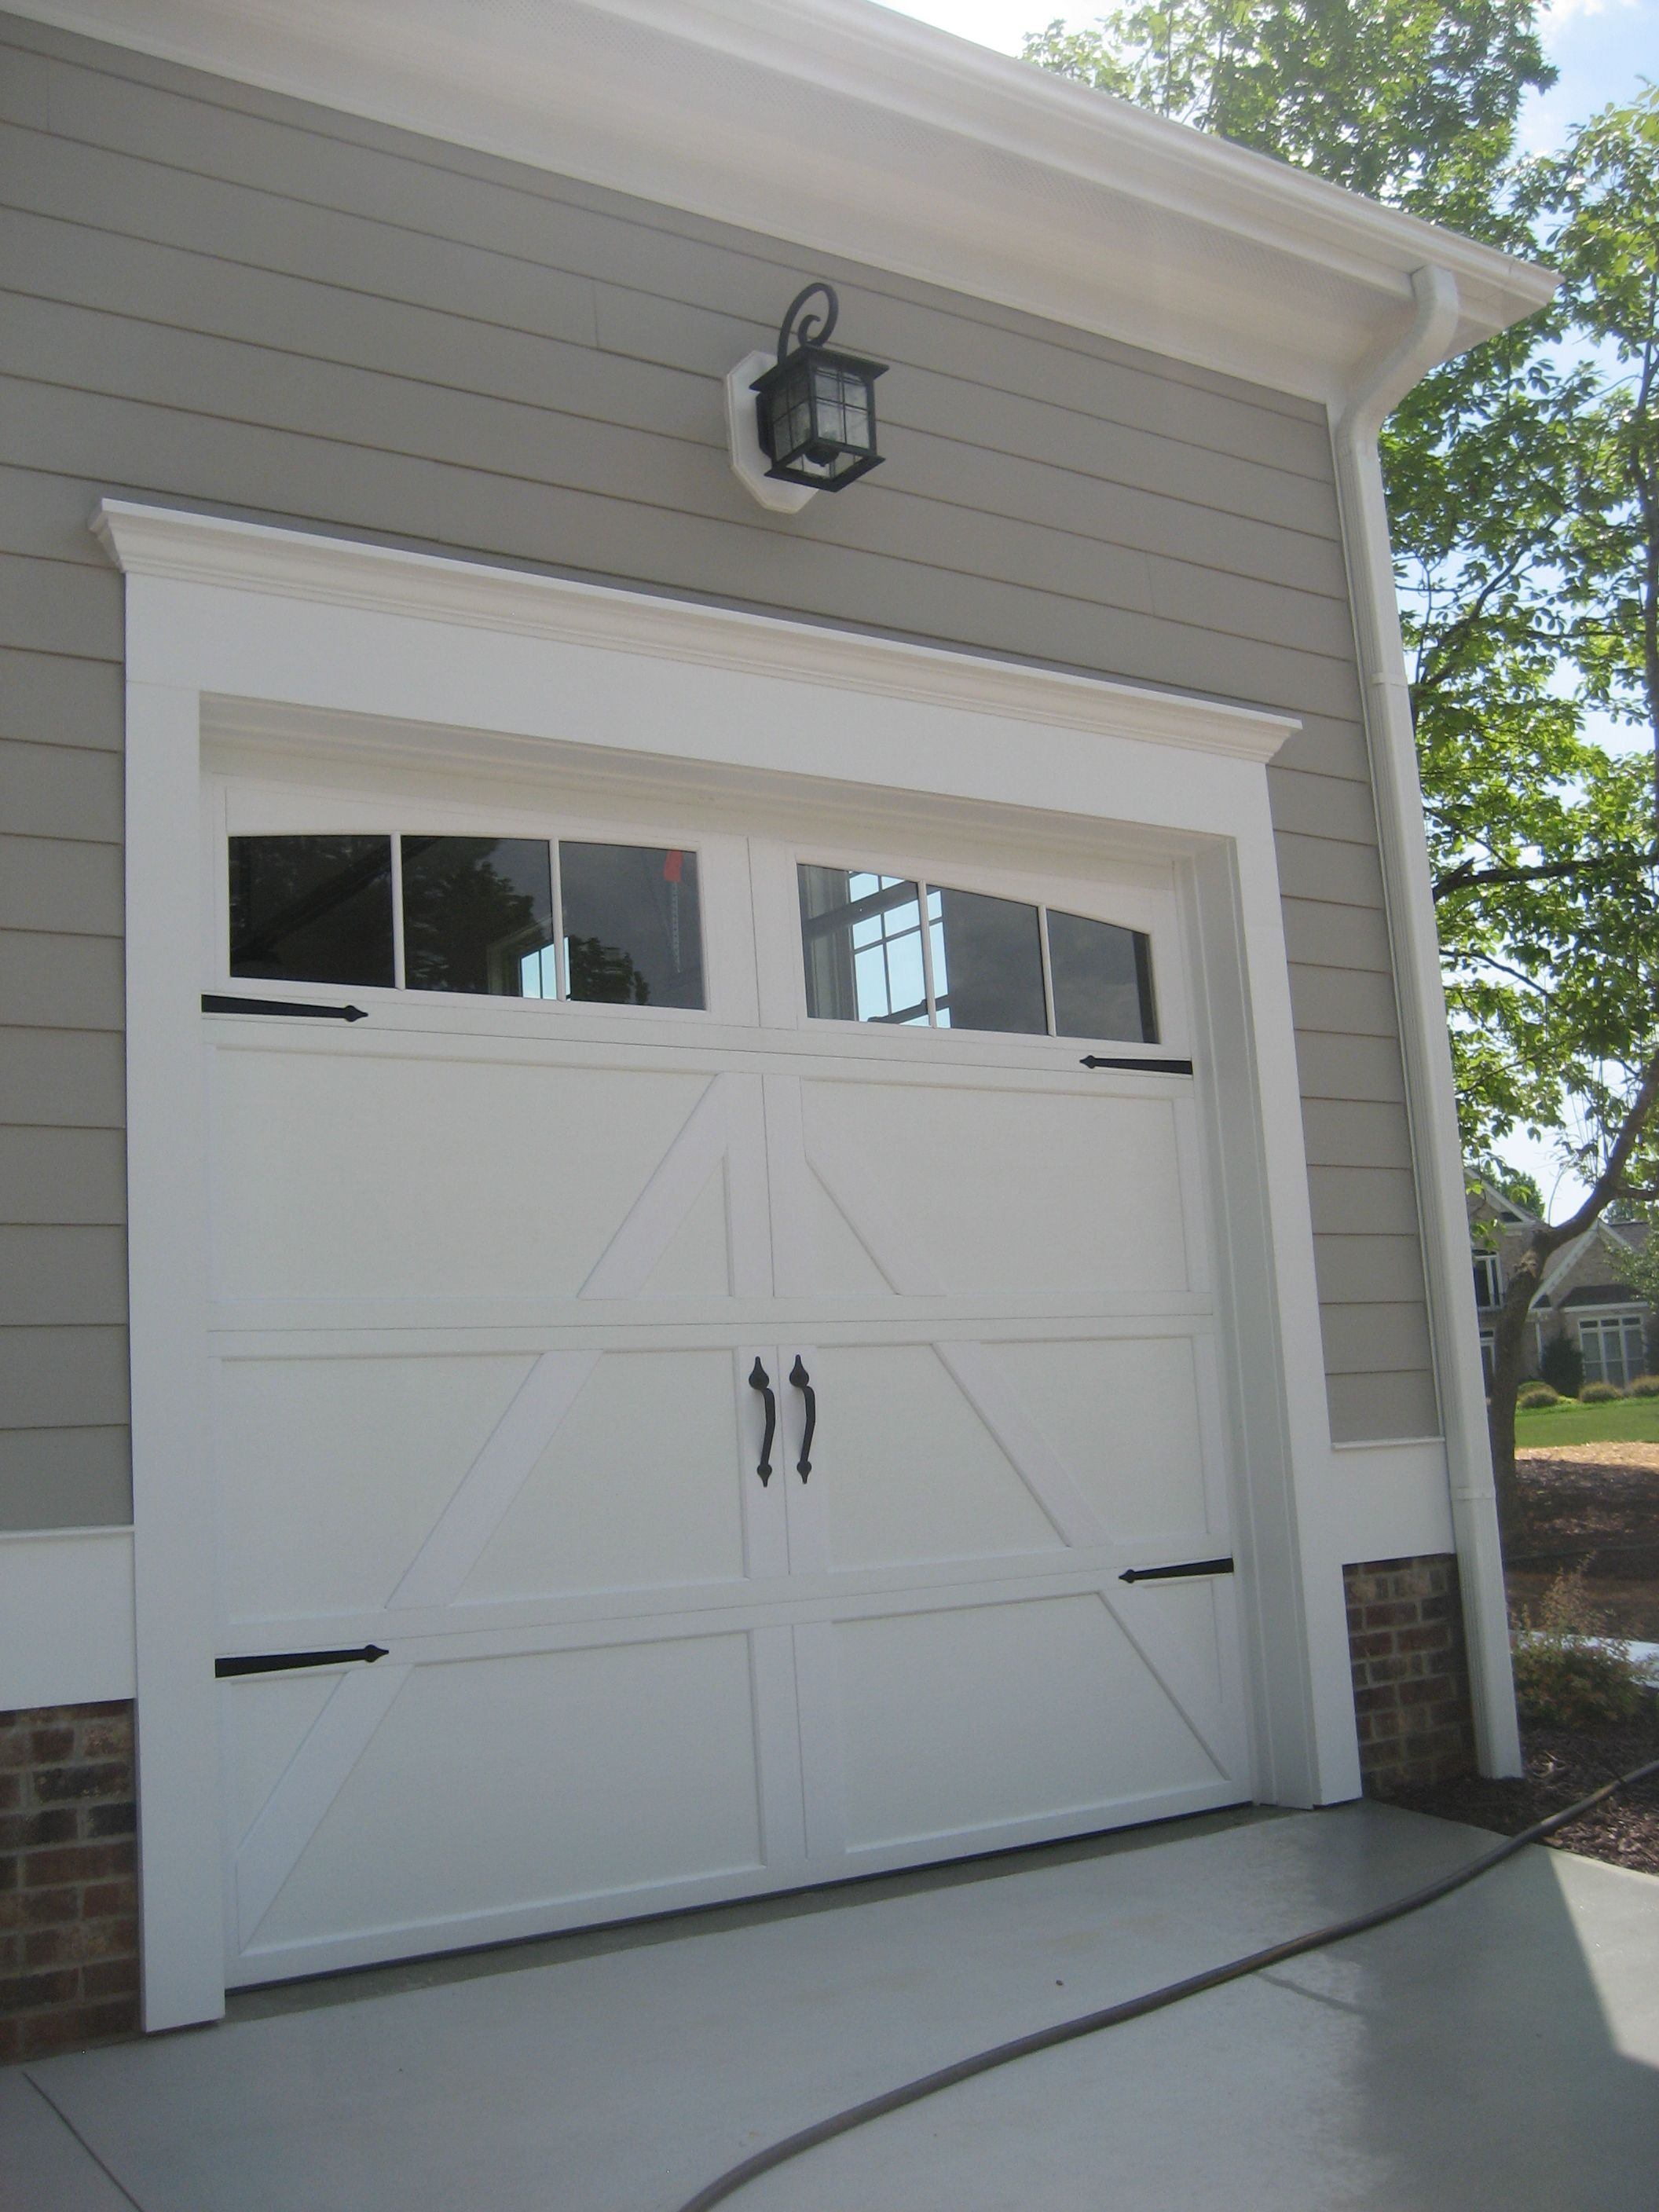 Pin By Erinn Allison On Garage Garage Door Trim Garage Door Design Garage Door Colors